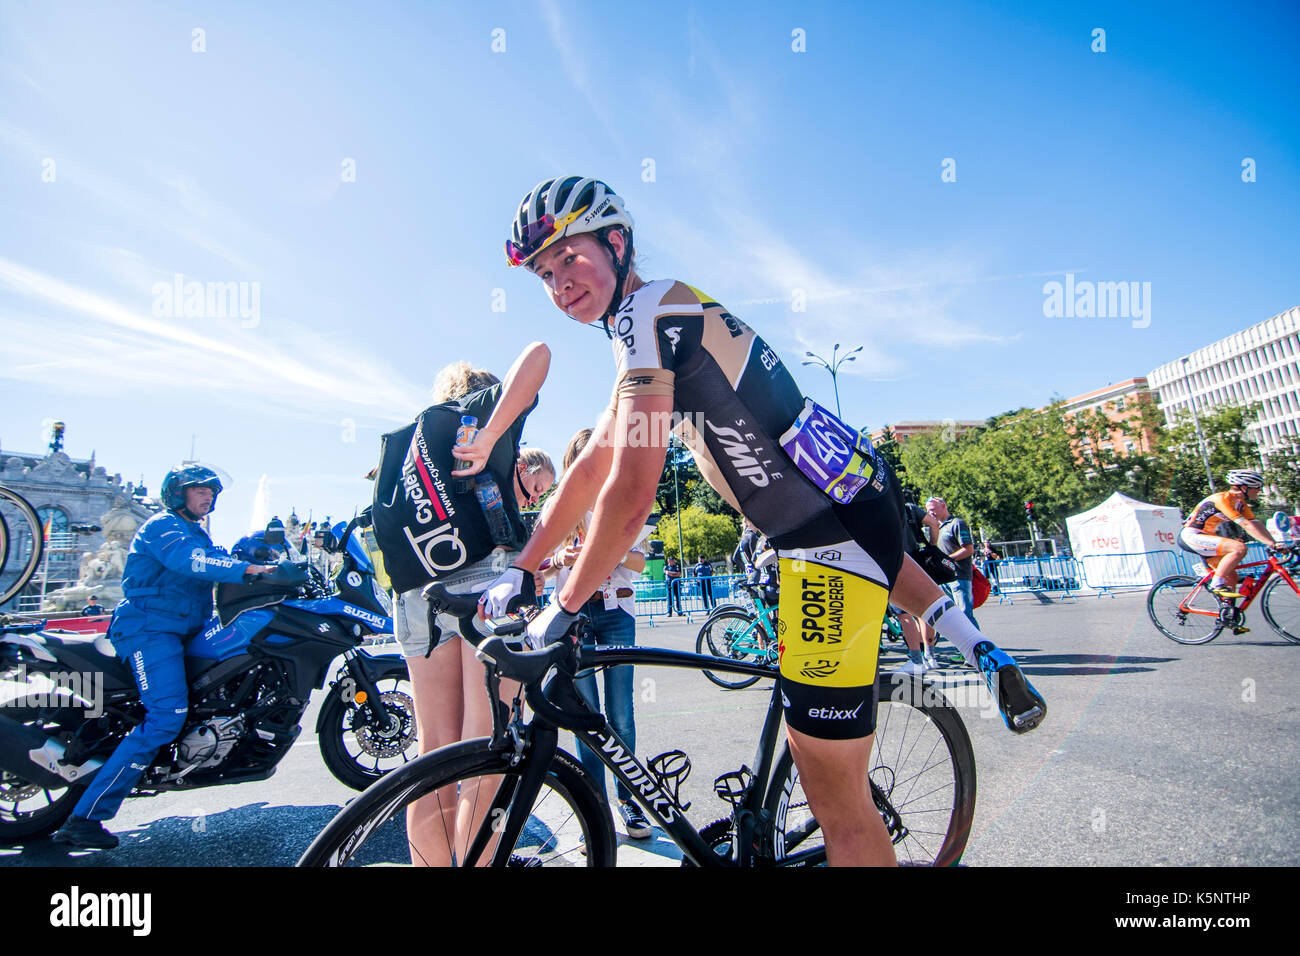 Madrid, Spain. 10th Sep, 2017. A cyclist of Nathalie Bex (Sport Vlaanderen Guill D'Or) during the women cycling - Stock Image